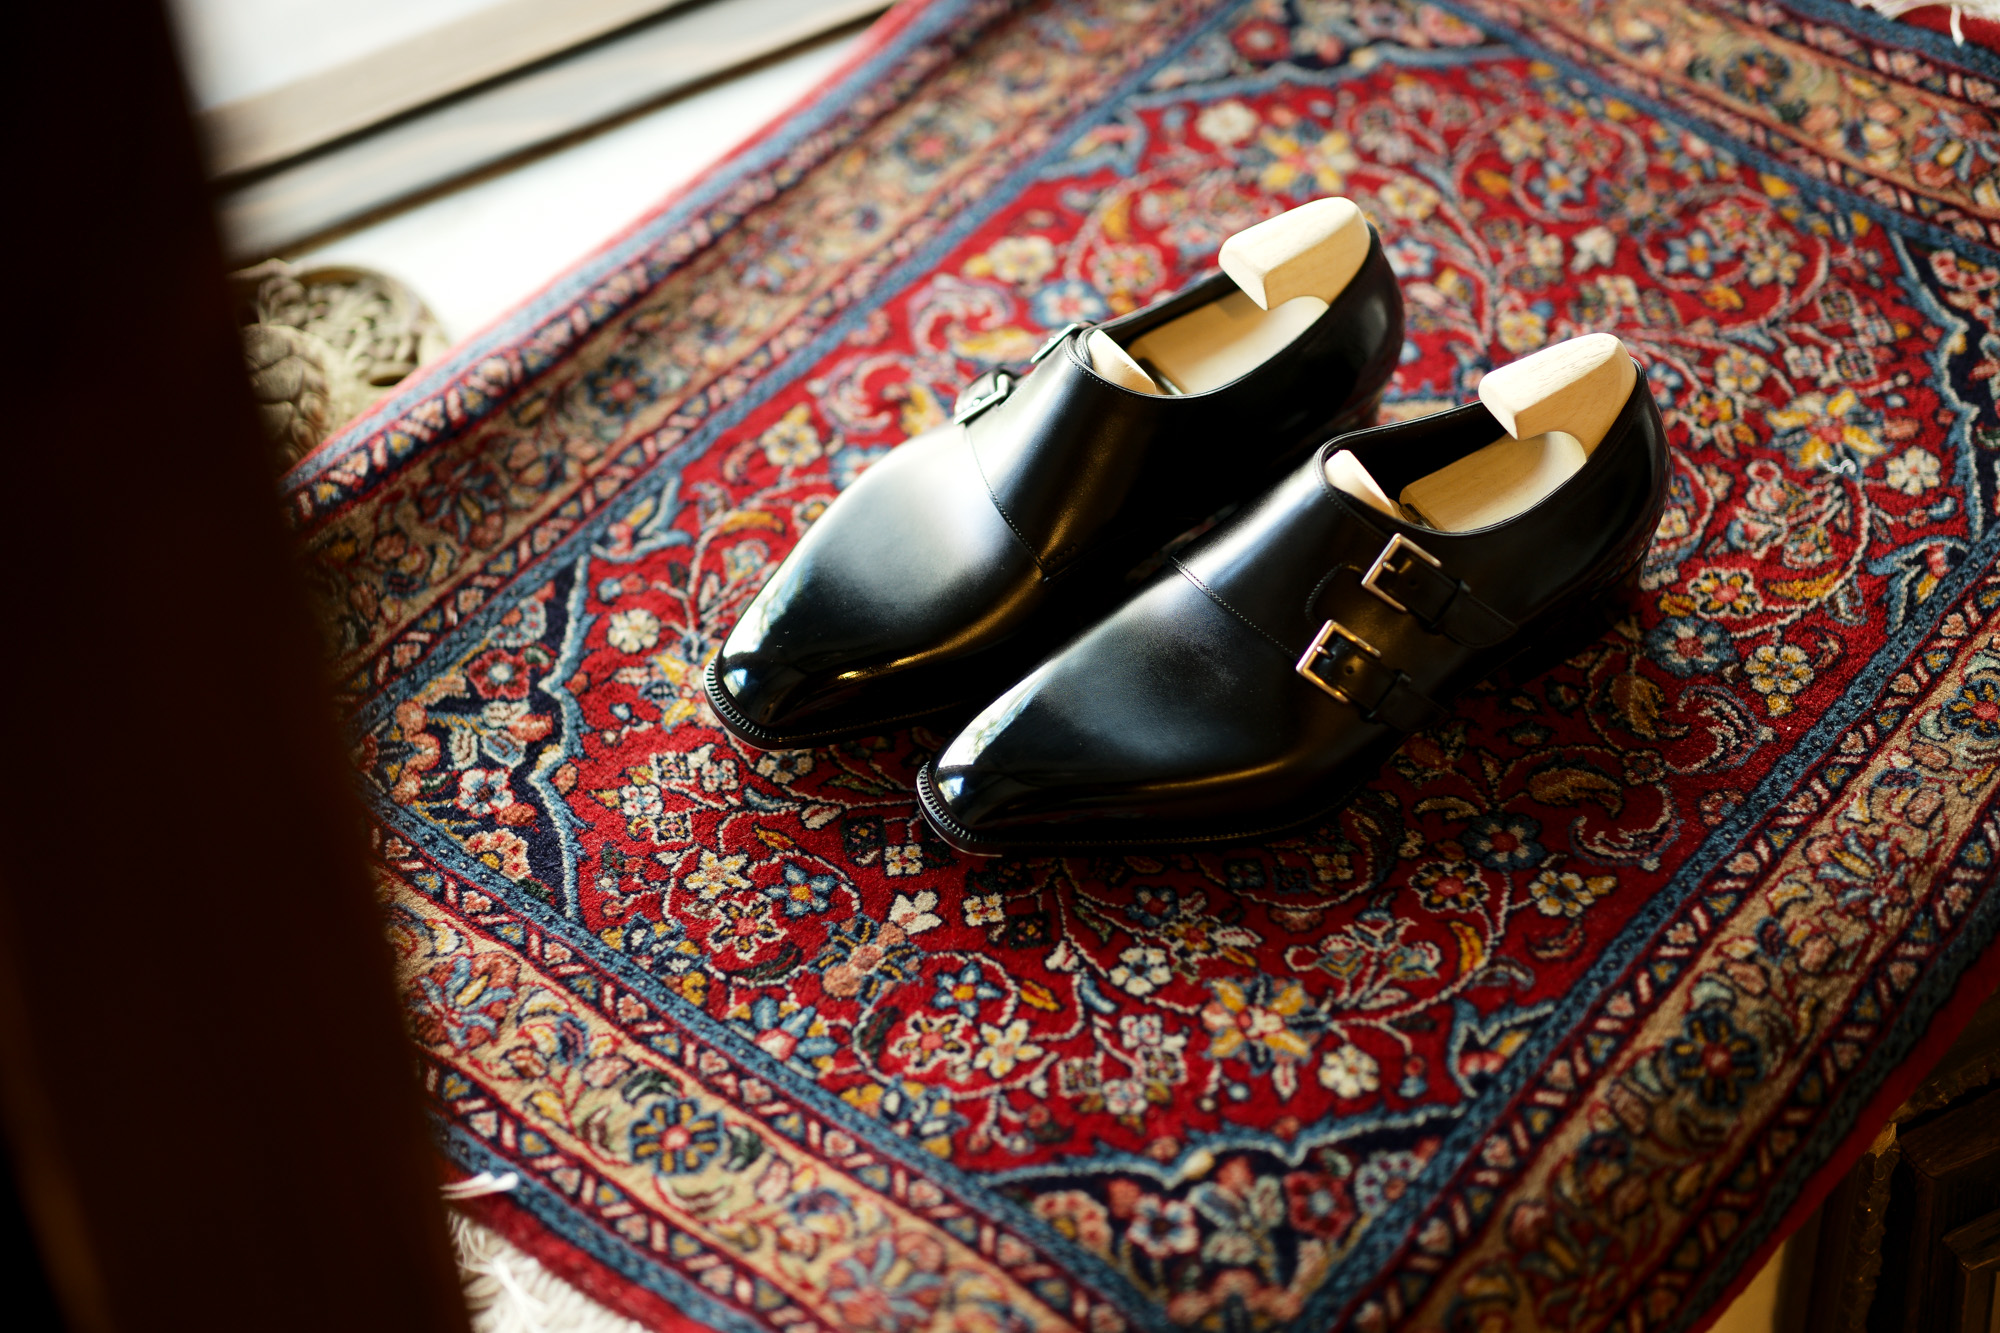 Yohei Fukuda // Double Monk Strap Shoes BLACK 【Bespoke】ヨーヘイフクダ 福田洋平 ビスポークシューズ ダブルモンクストラップシューズ ドレスシューズ ブラック 仮縫い 完成 福田洋平 Yohei Fukuda 東京都港区北青山2-12-27 BAL青山2F 既製靴 ビスポークシューズ ビスポーク 受注会 オーダー会 ダブルモンク テディベア Yohei Fukuda learned shoemaking in Northamptonshire, the traditional home of English shoemaking, followed by a local apprenticeship and then work for several years for London firms.After returning to Japan he founded Yohei Fukuda in Tokyo in 2008. Since its founding the workshop has grown and now has 4 additional craftsmen, each driven by the same passion for shoemaking and dedication to quality for which Yohei Fukuda shoes are known.At Yohei Fukuda the aim is to create classically styled shoes of the highest quality that will be of value to their owners for many years. By using the finest materials and time-tested techniques of traditional bespoke shoemaking, we hope to make shoes of timeless elegance.名だたるビスポーク・シューメーカーで靴作りを手がけてきた福田洋平が2008年に設立した「Yohei Fukuda」の公式オンラインショップ。伝統的な英国靴の仕立てを継承しつつ、ミリ単位にまでこだわる日本人ならではの感性で、モダン